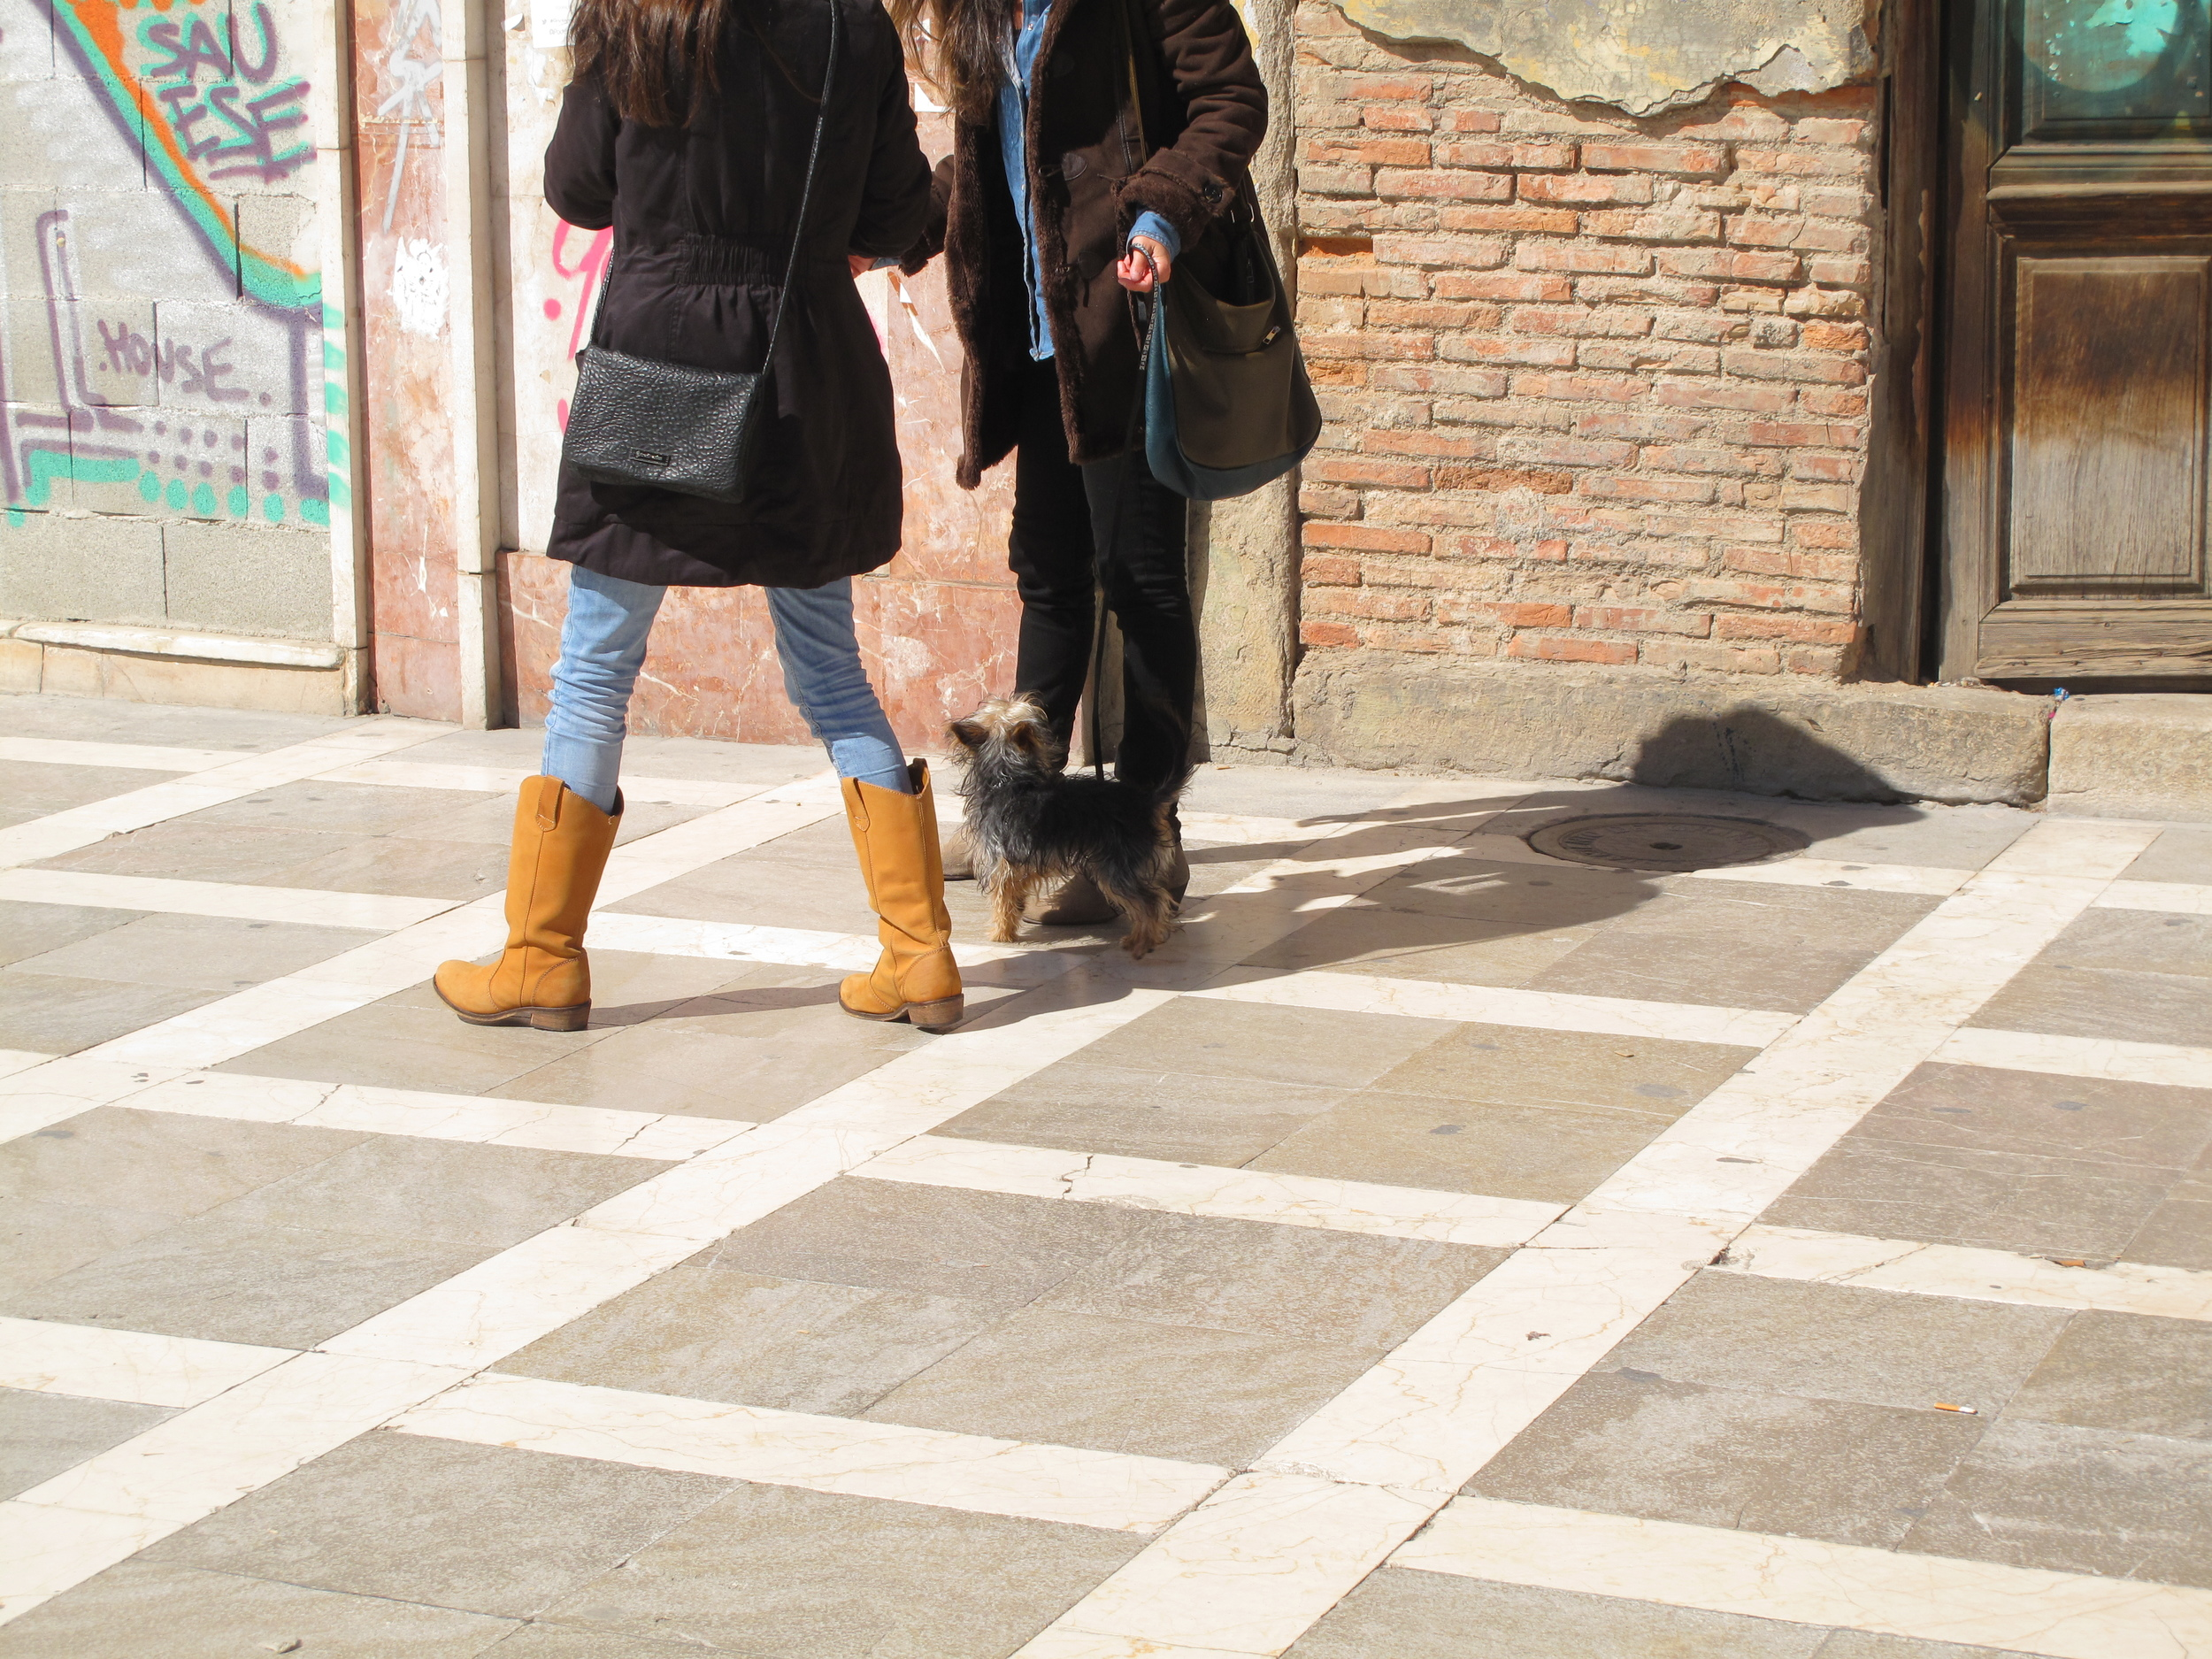 Two women walking a small dog in the streets of Granada